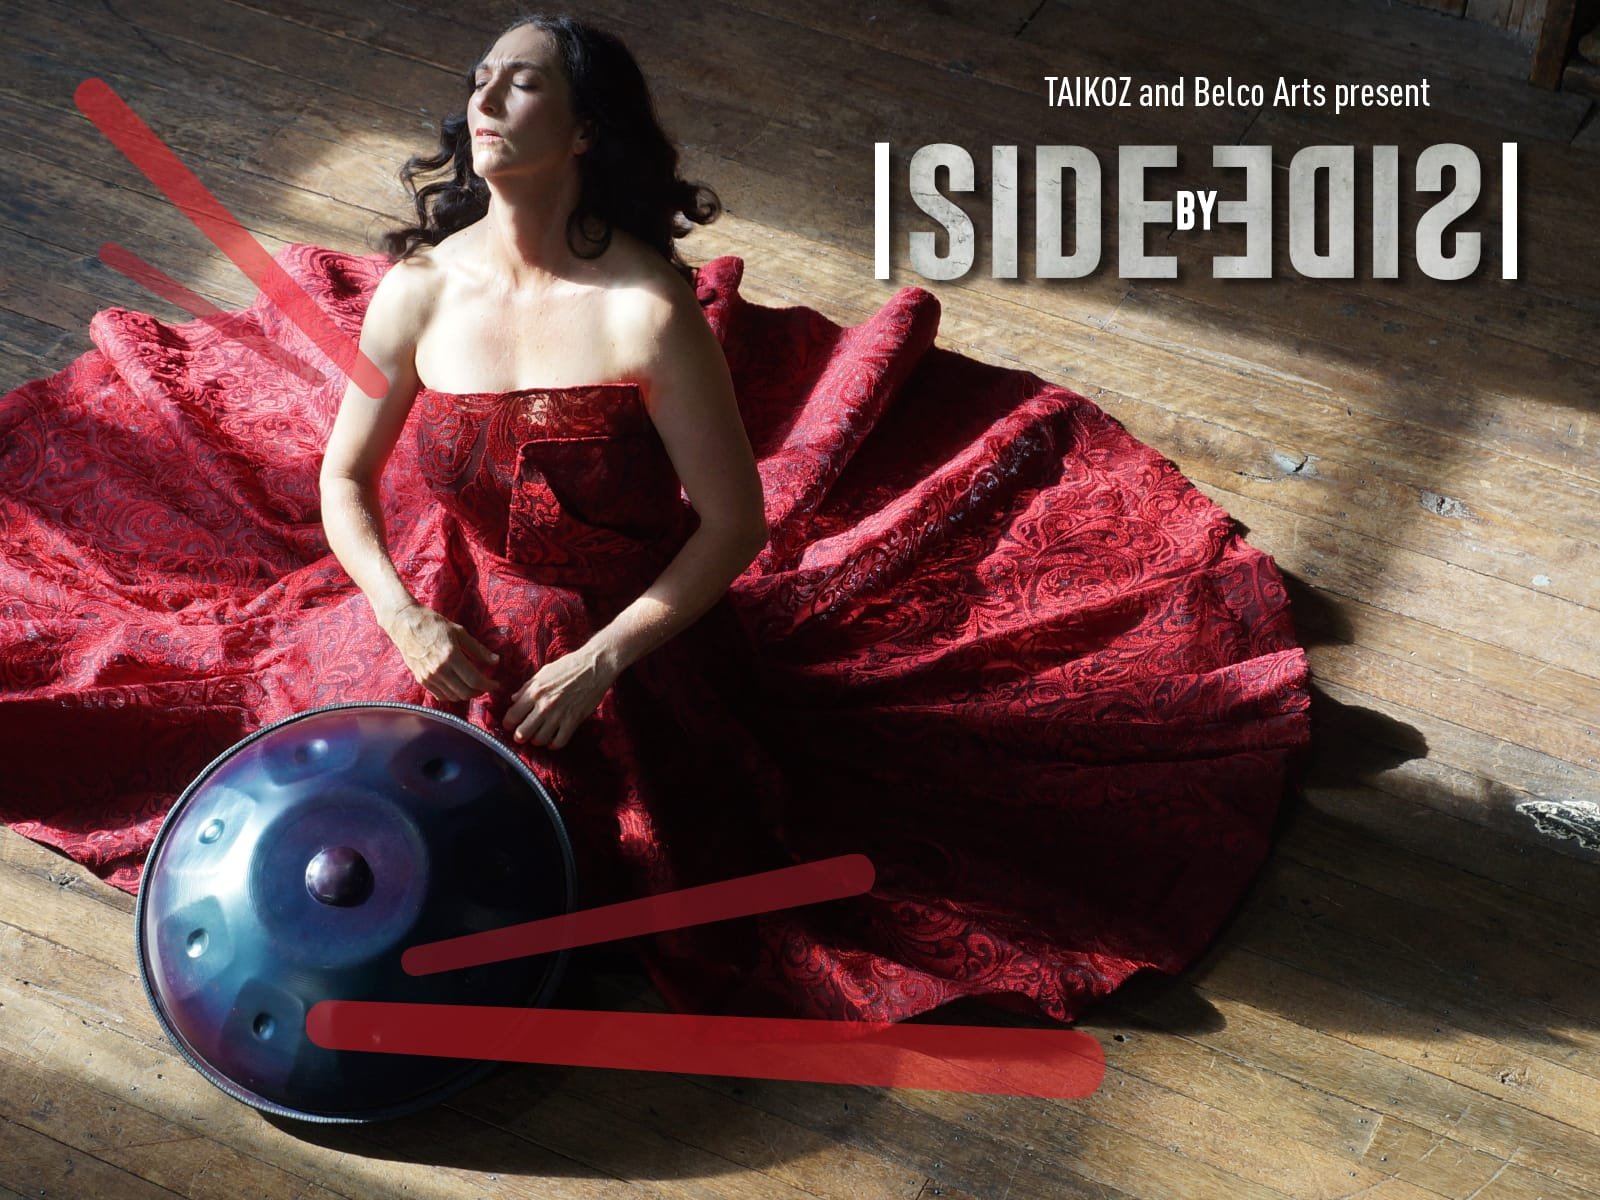 Taikoz and Belco Arts present Side by Side